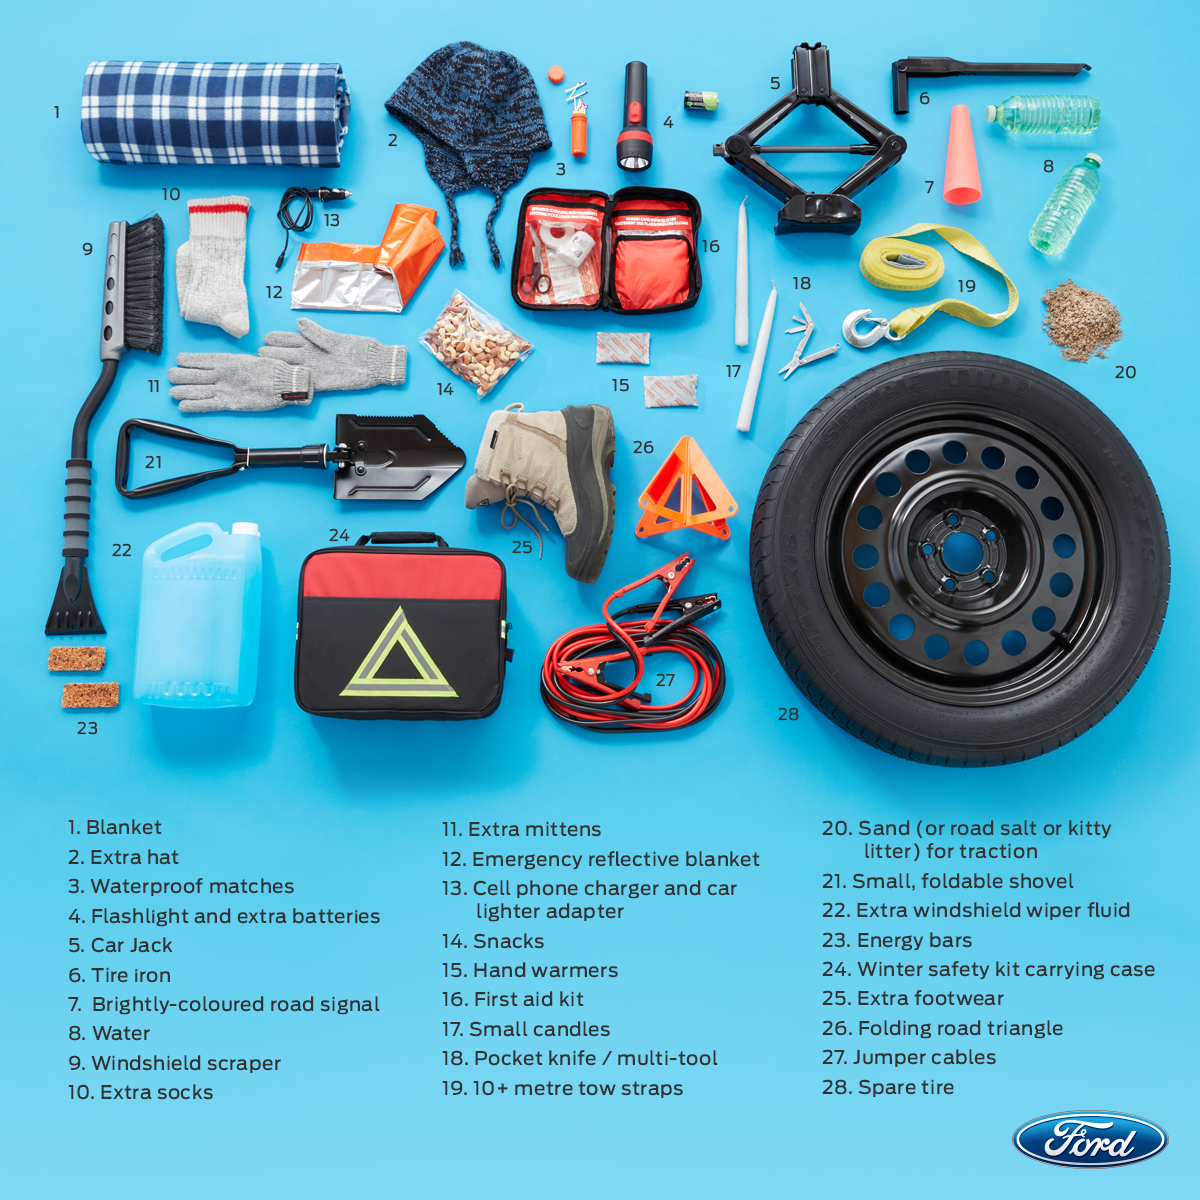 A list of rigging that should be enclosed in your winter puncture automobile kit.